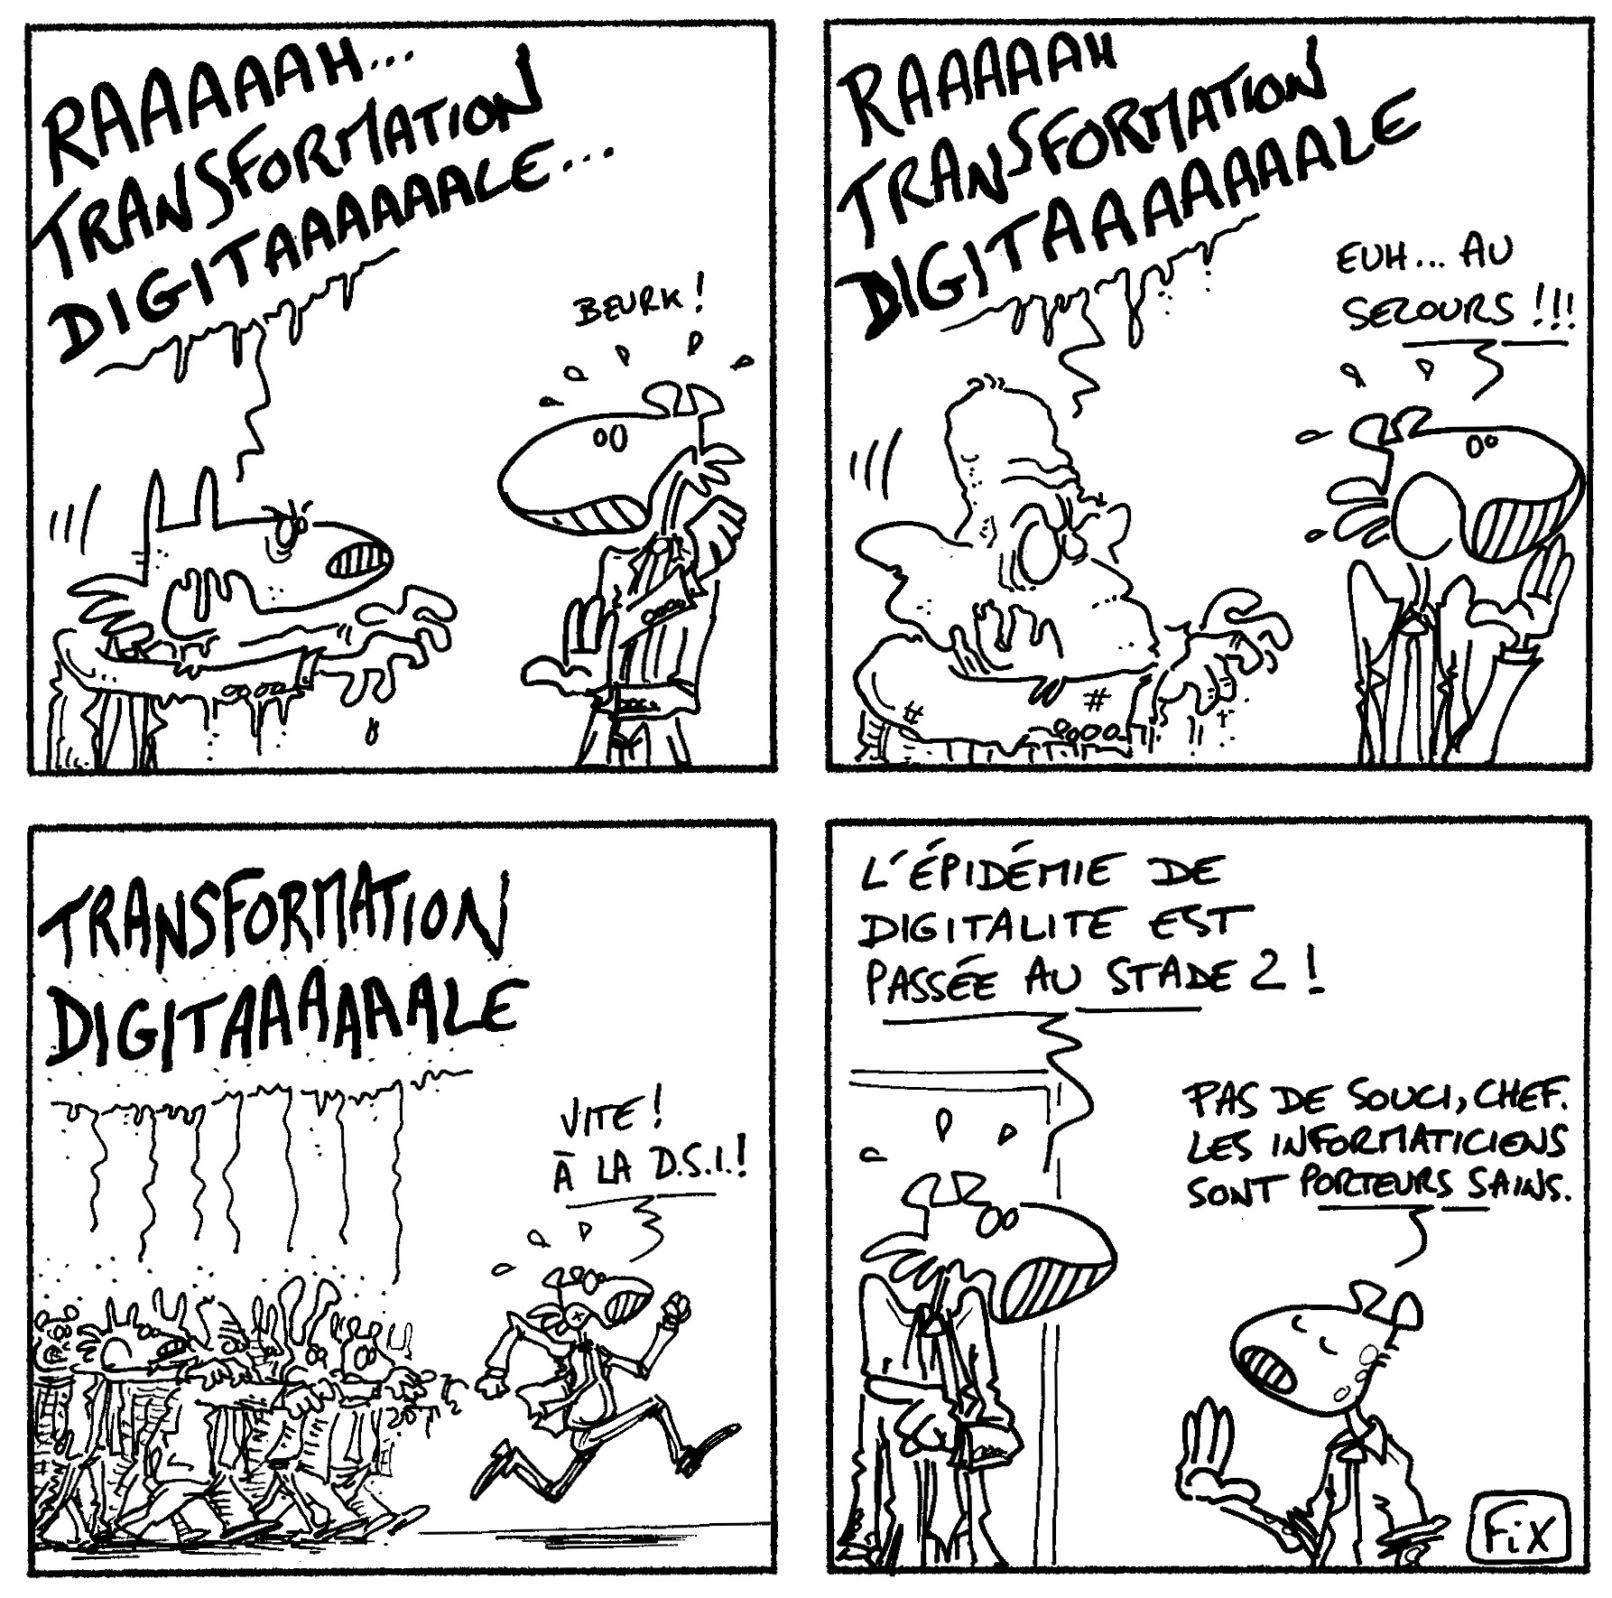 Transformation digitale épisode 2